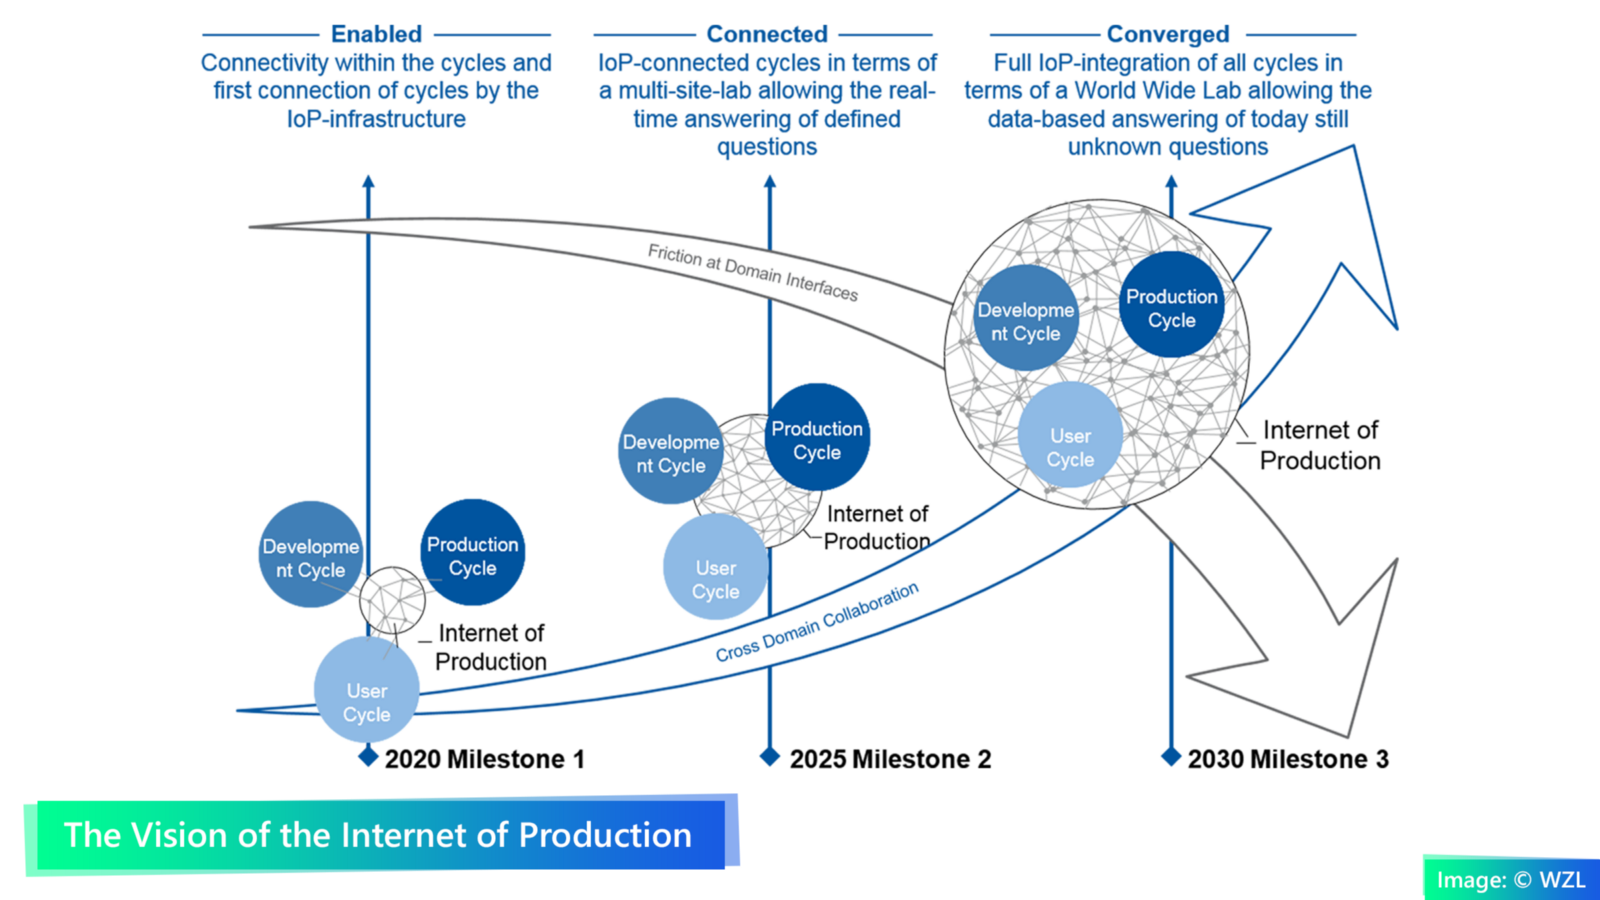 2b: The Vision of the Internet of Production. Image: © WZL